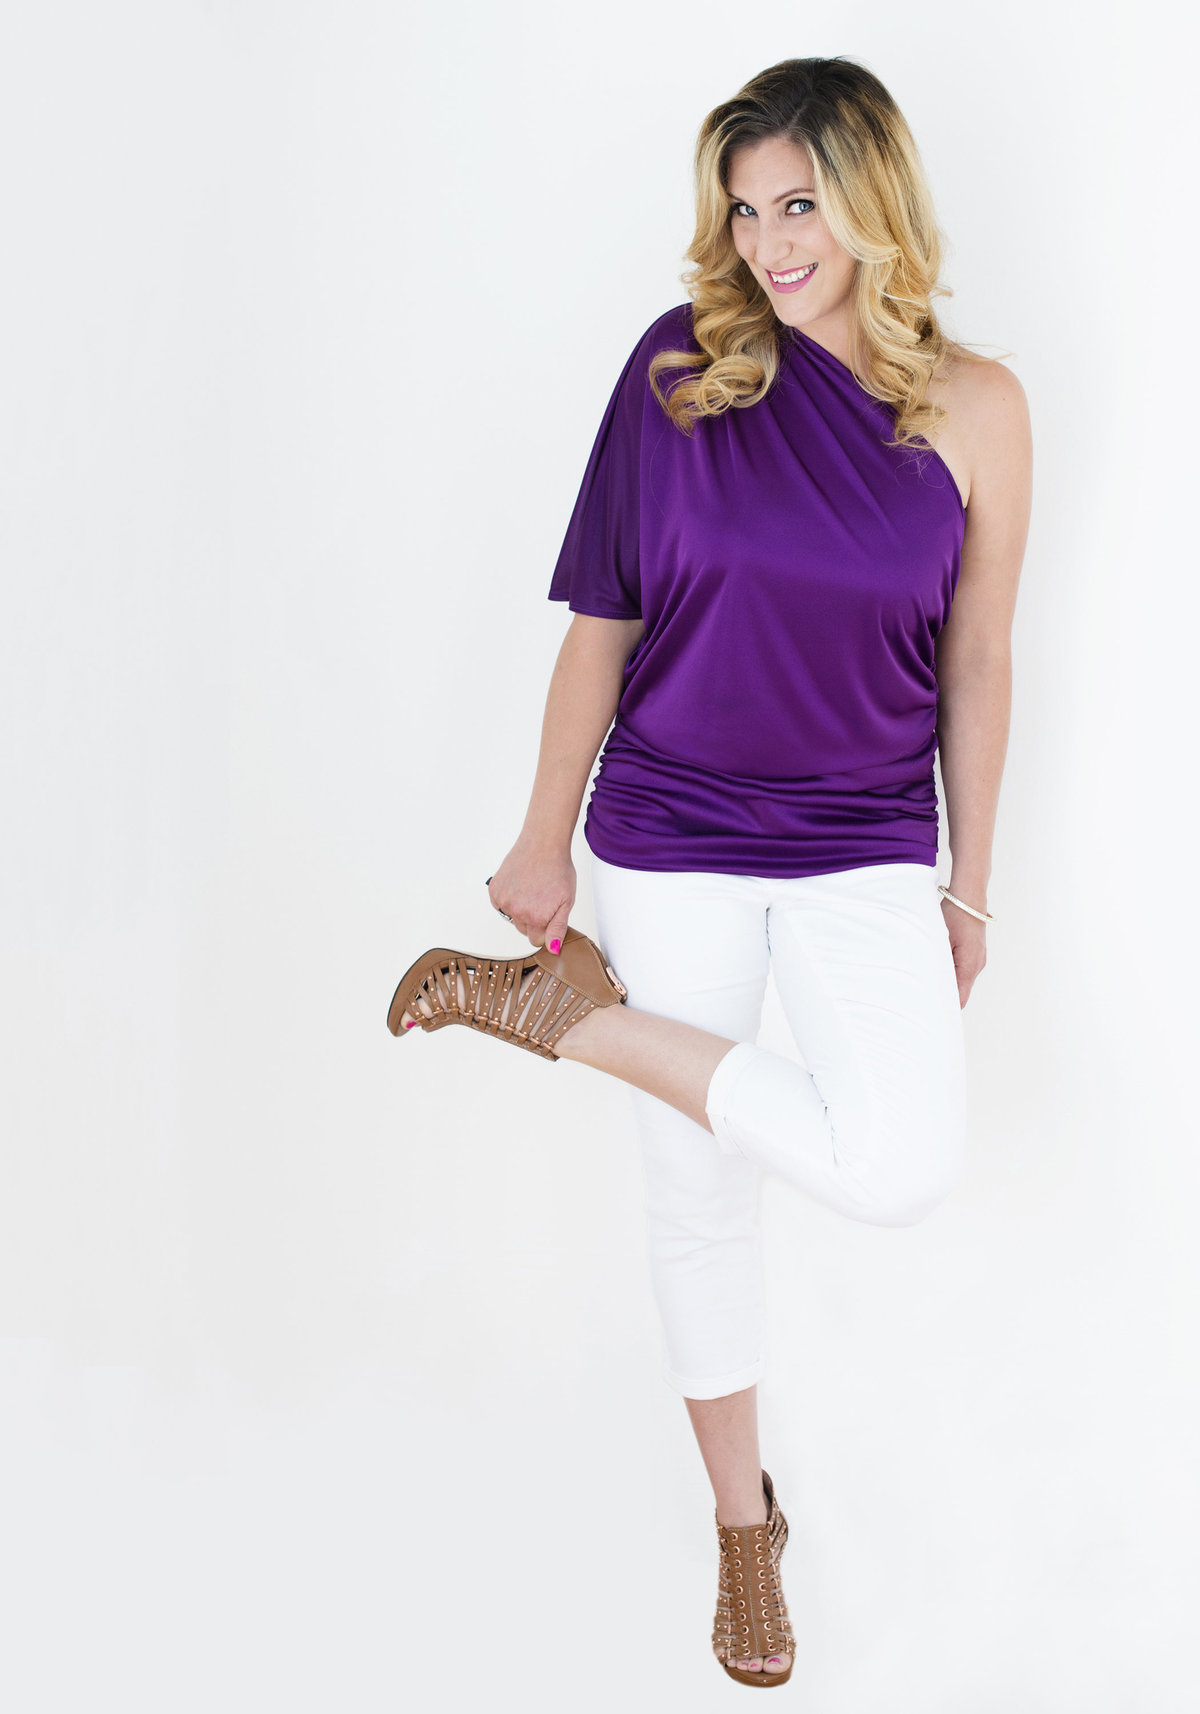 personal branding headshot of  social media strategist with  one  leg folded wearing purple color  top  full length  shot at  photo studio